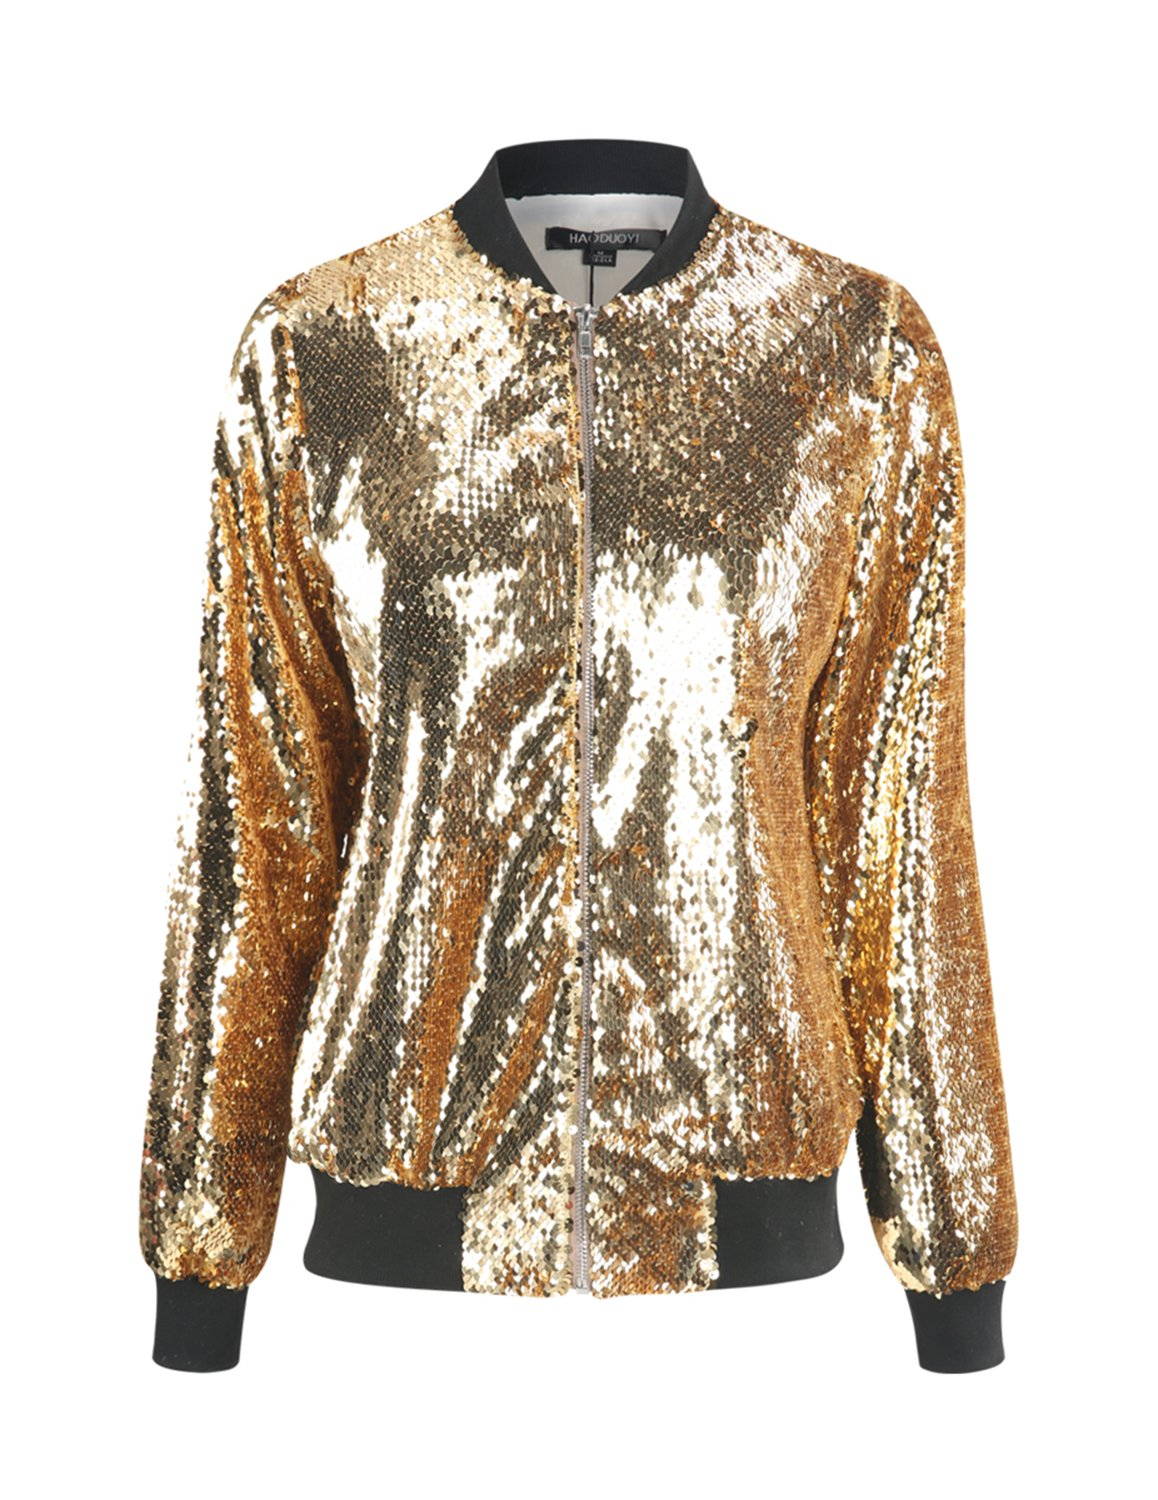 HaoDuoYi Womens Casual Lightweight Sequin Zipper Bomber Jacket (Large, Gold)